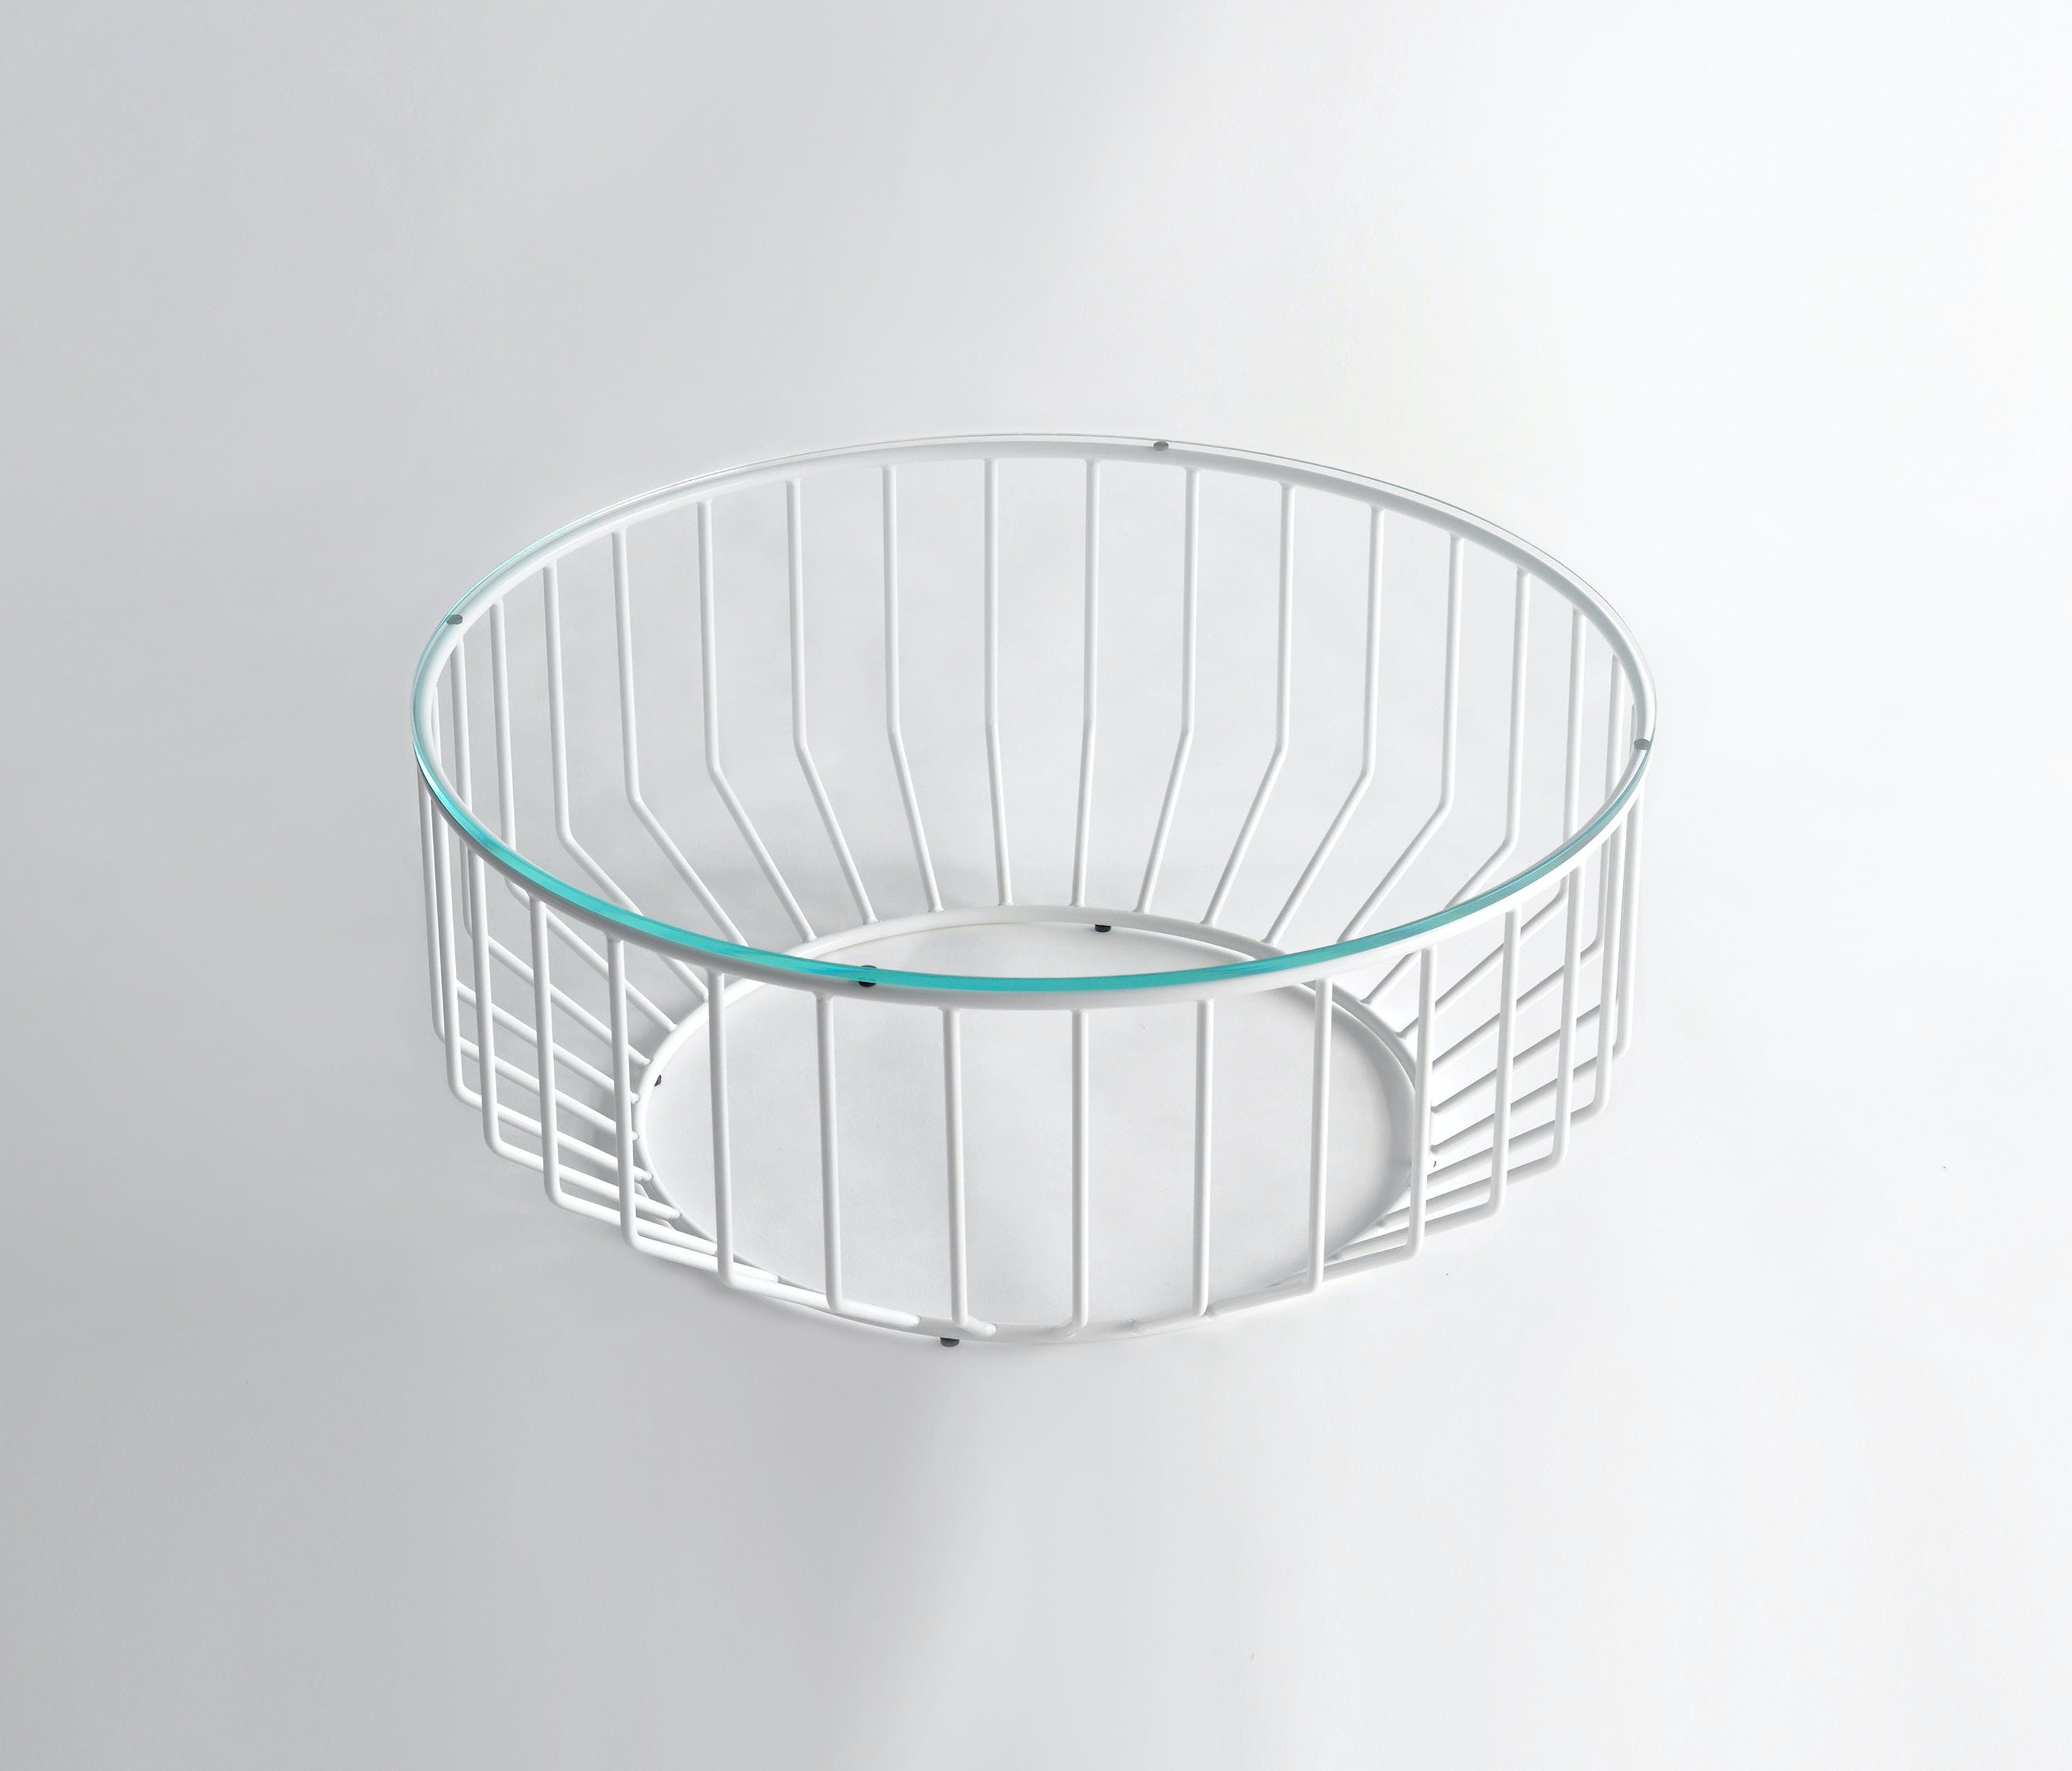 Phase Design White Wired Coffee Table Haute Living